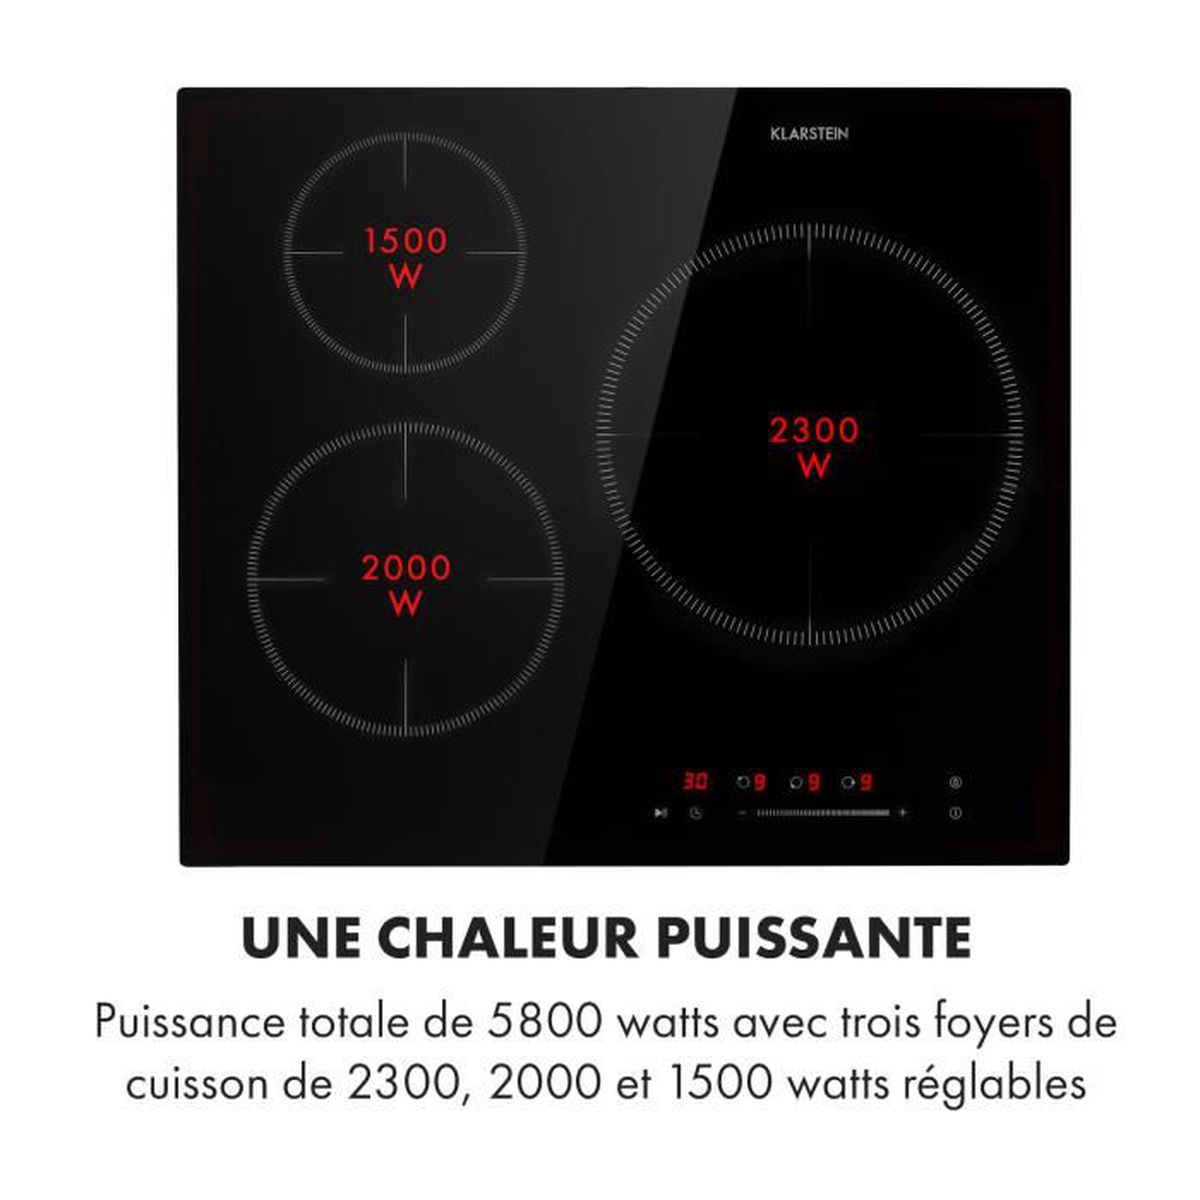 Table De Cuisson Vitrocéramique Pas Cher table de cuisson induction - klarstein delicatessa 3 flex - 3 zones - 5800w  - noir